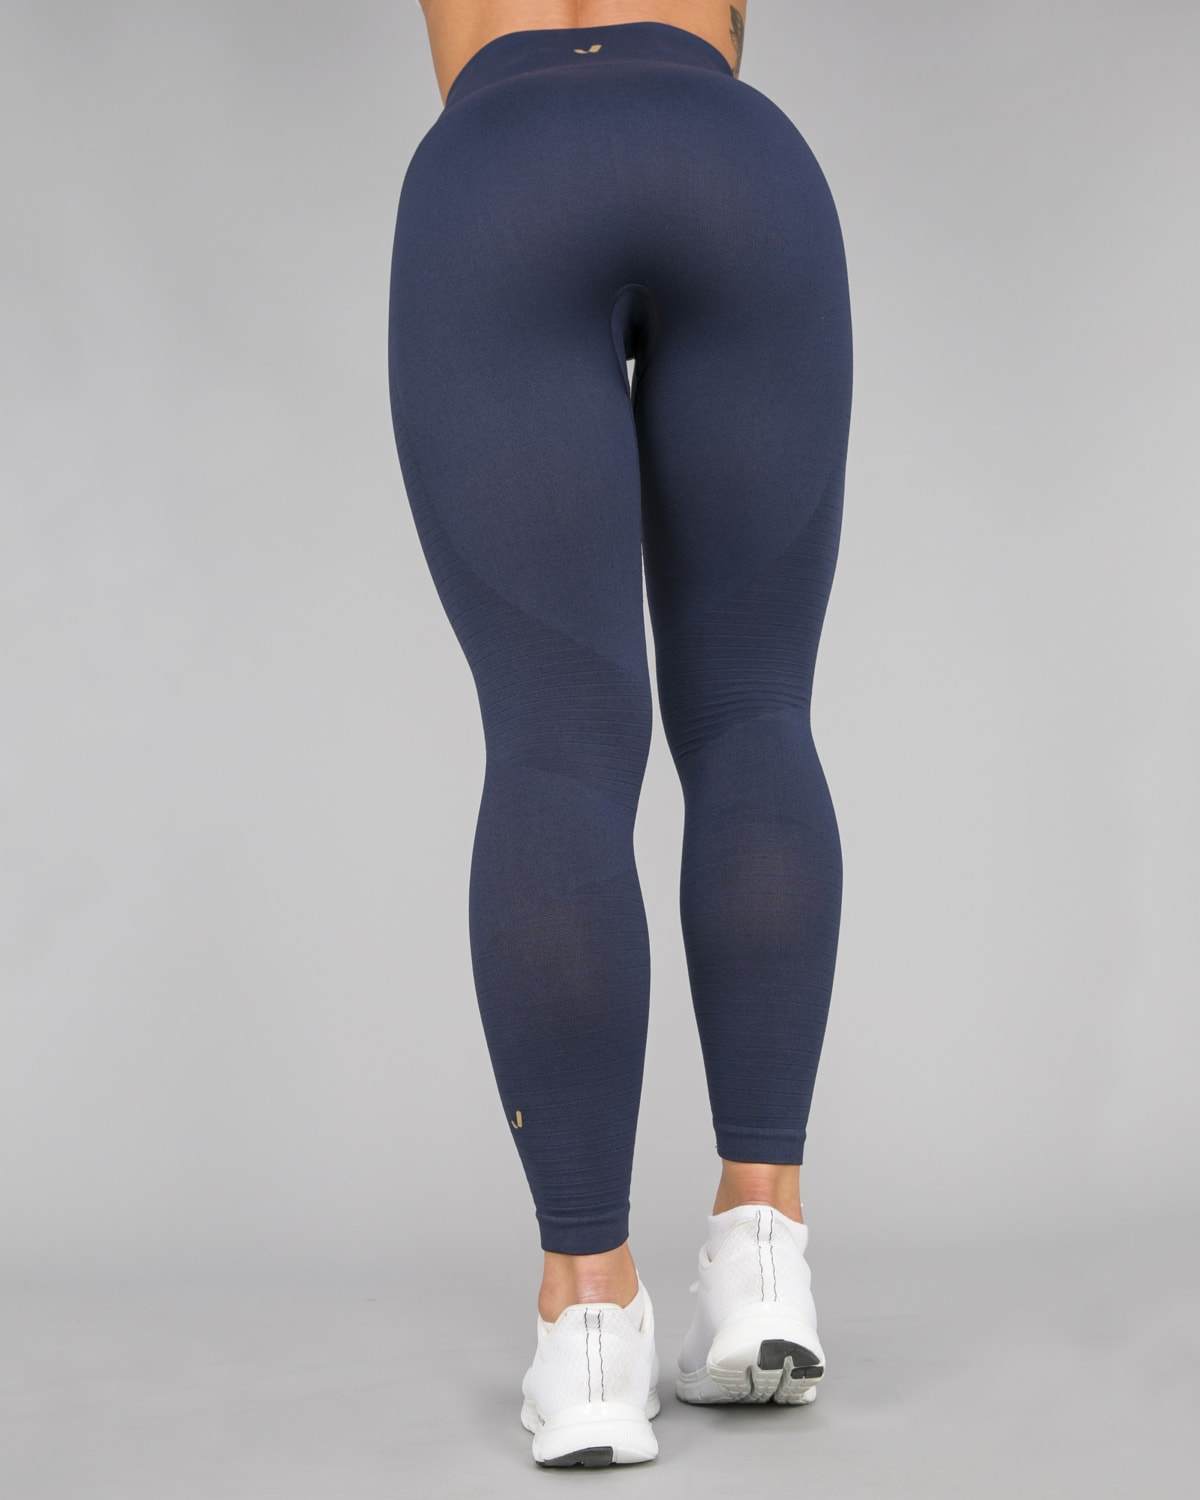 Jerf Gela 2.0 tights Navy Blue26